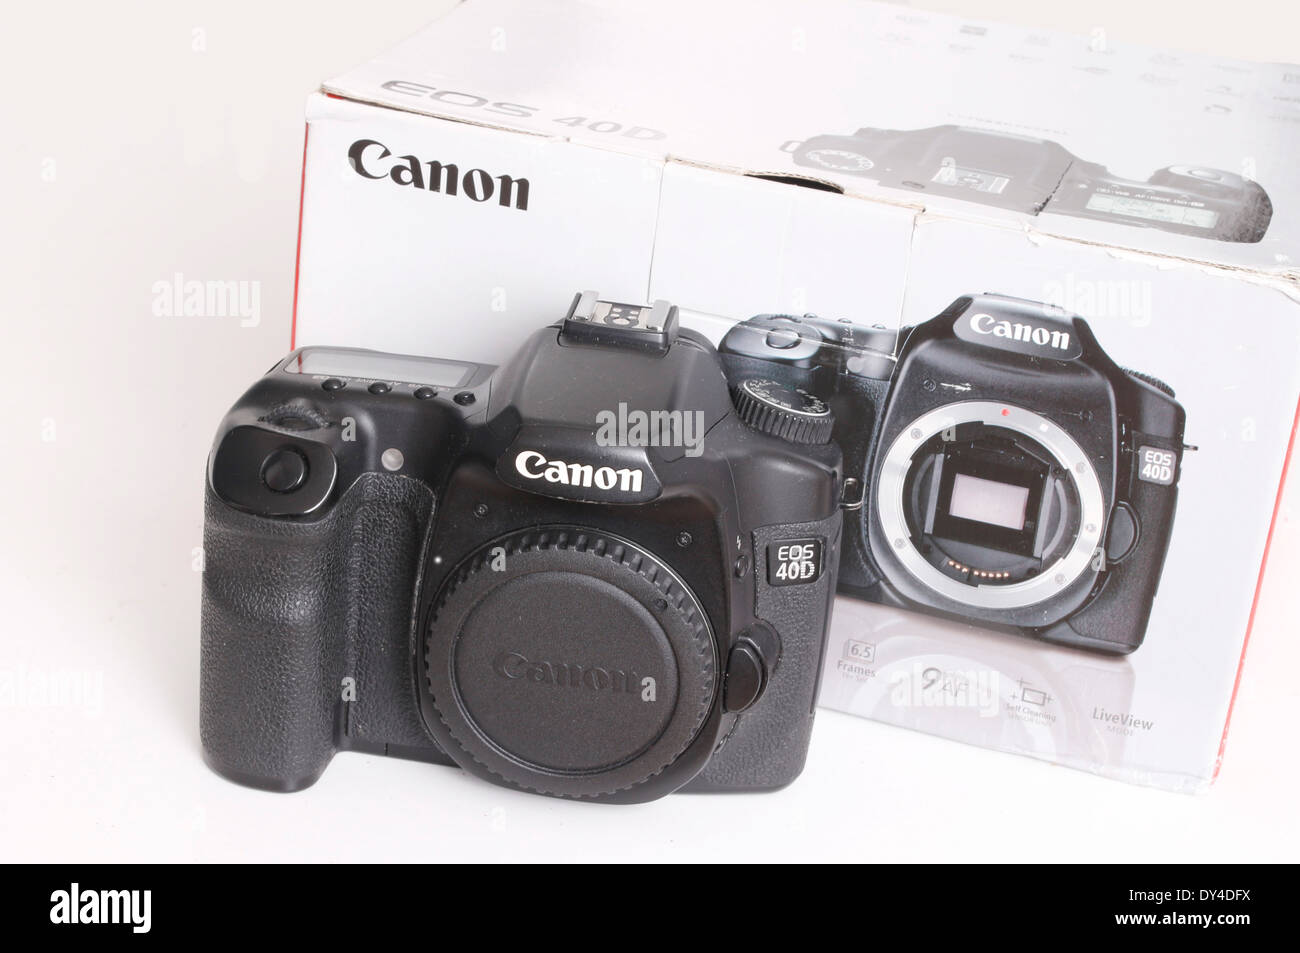 Canon 40D, an older quality digital slr camera body, shown with its box.